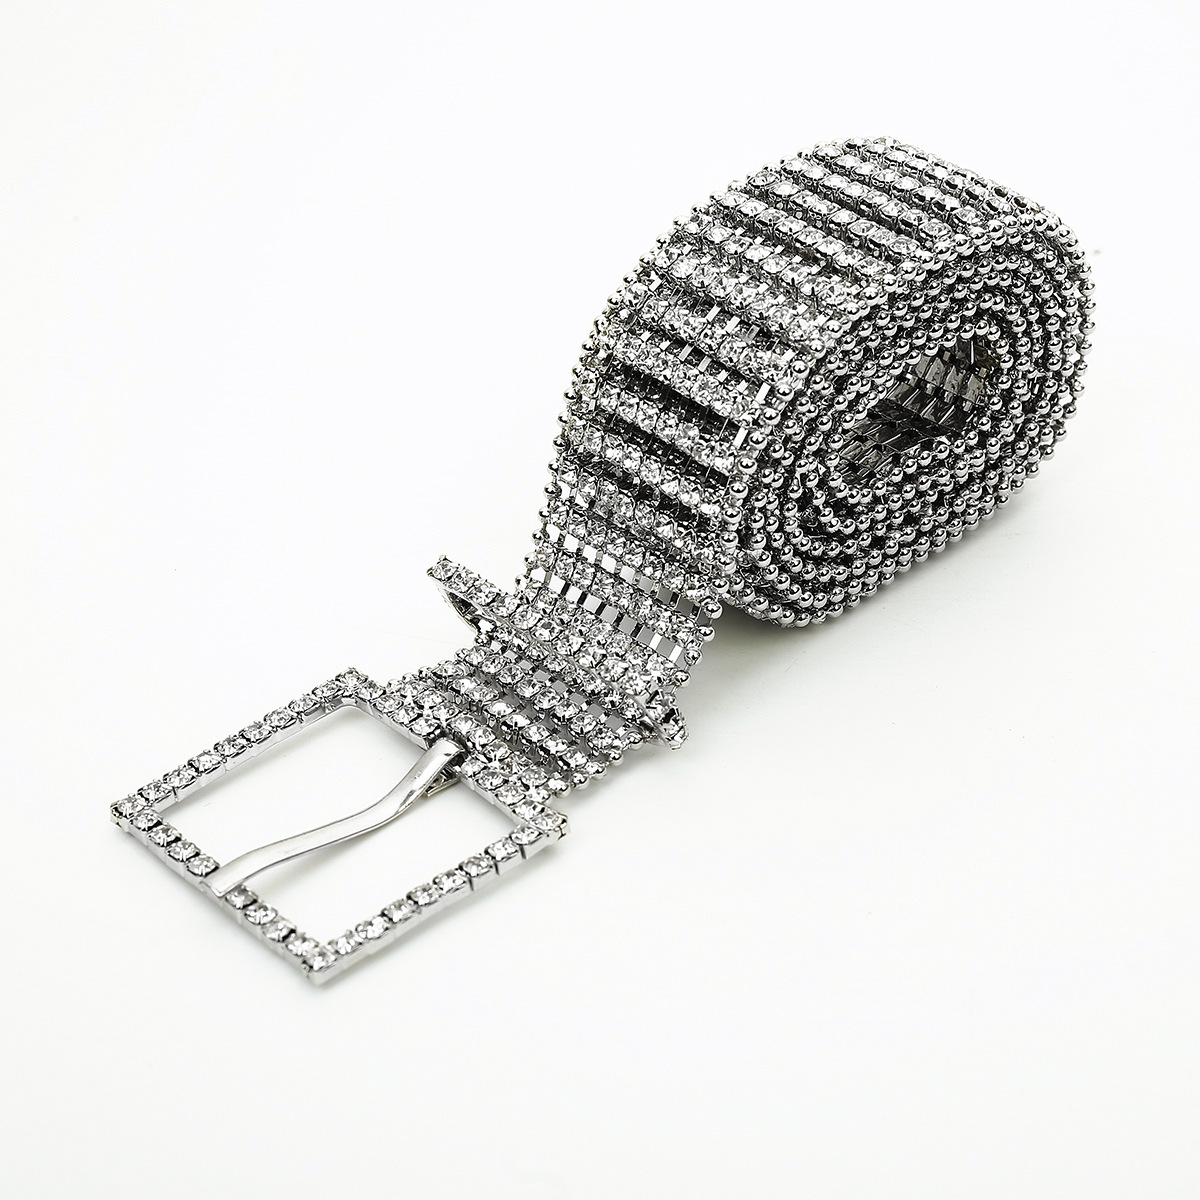 Alloy Vintage Geometric Body accessories  Section 2 GIRL waist chain  Fashion Jewelry NHXR2728Section2GIRLwaistchain